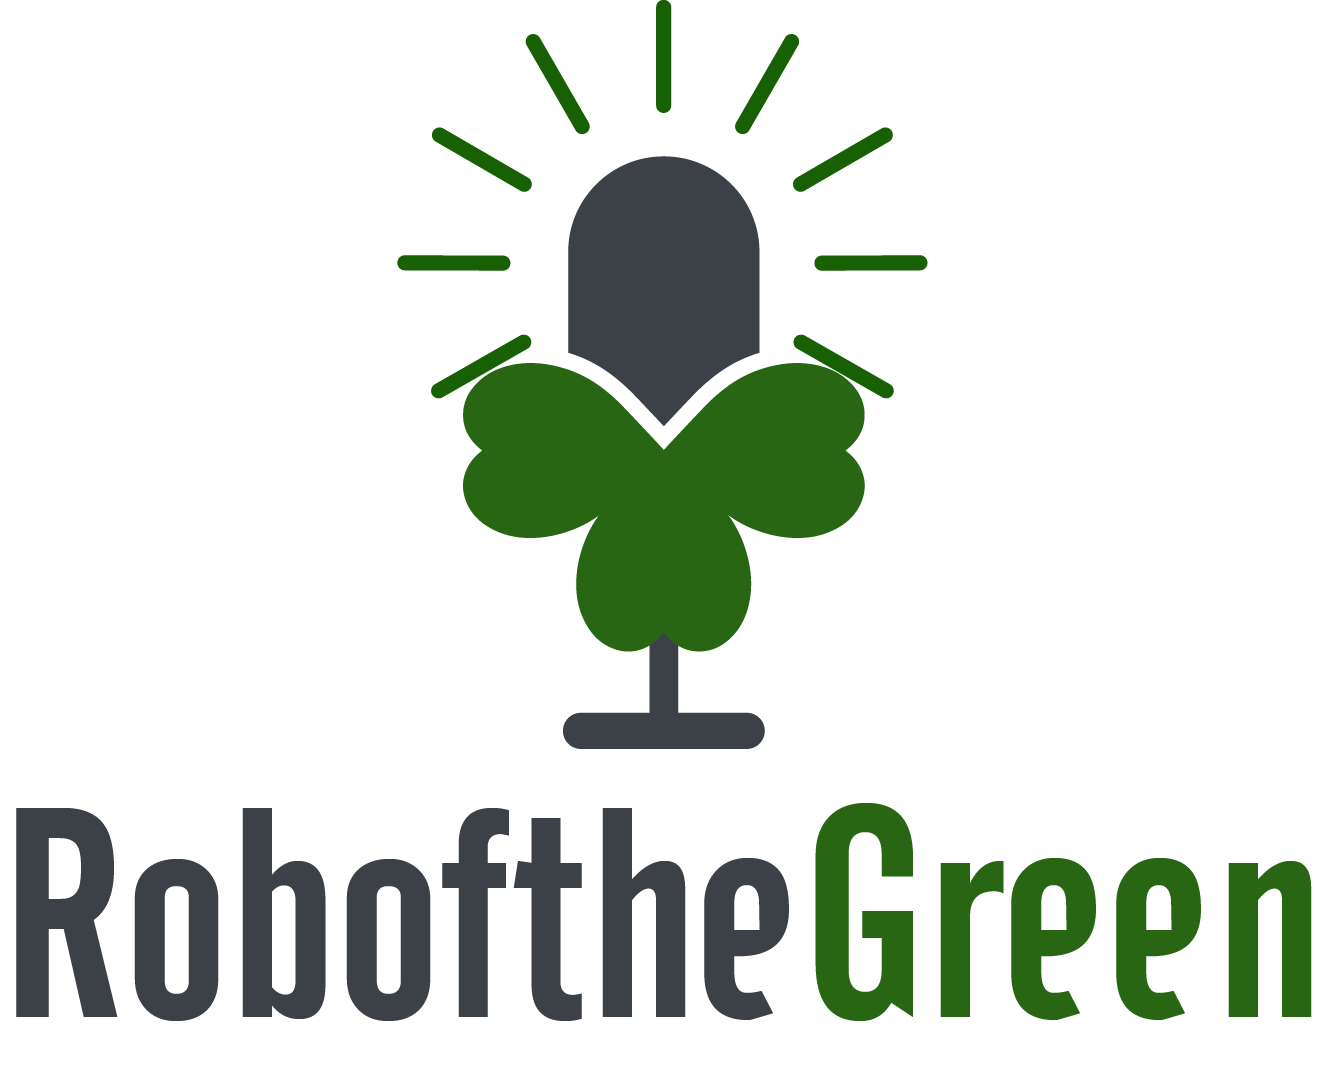 Rob of the Green